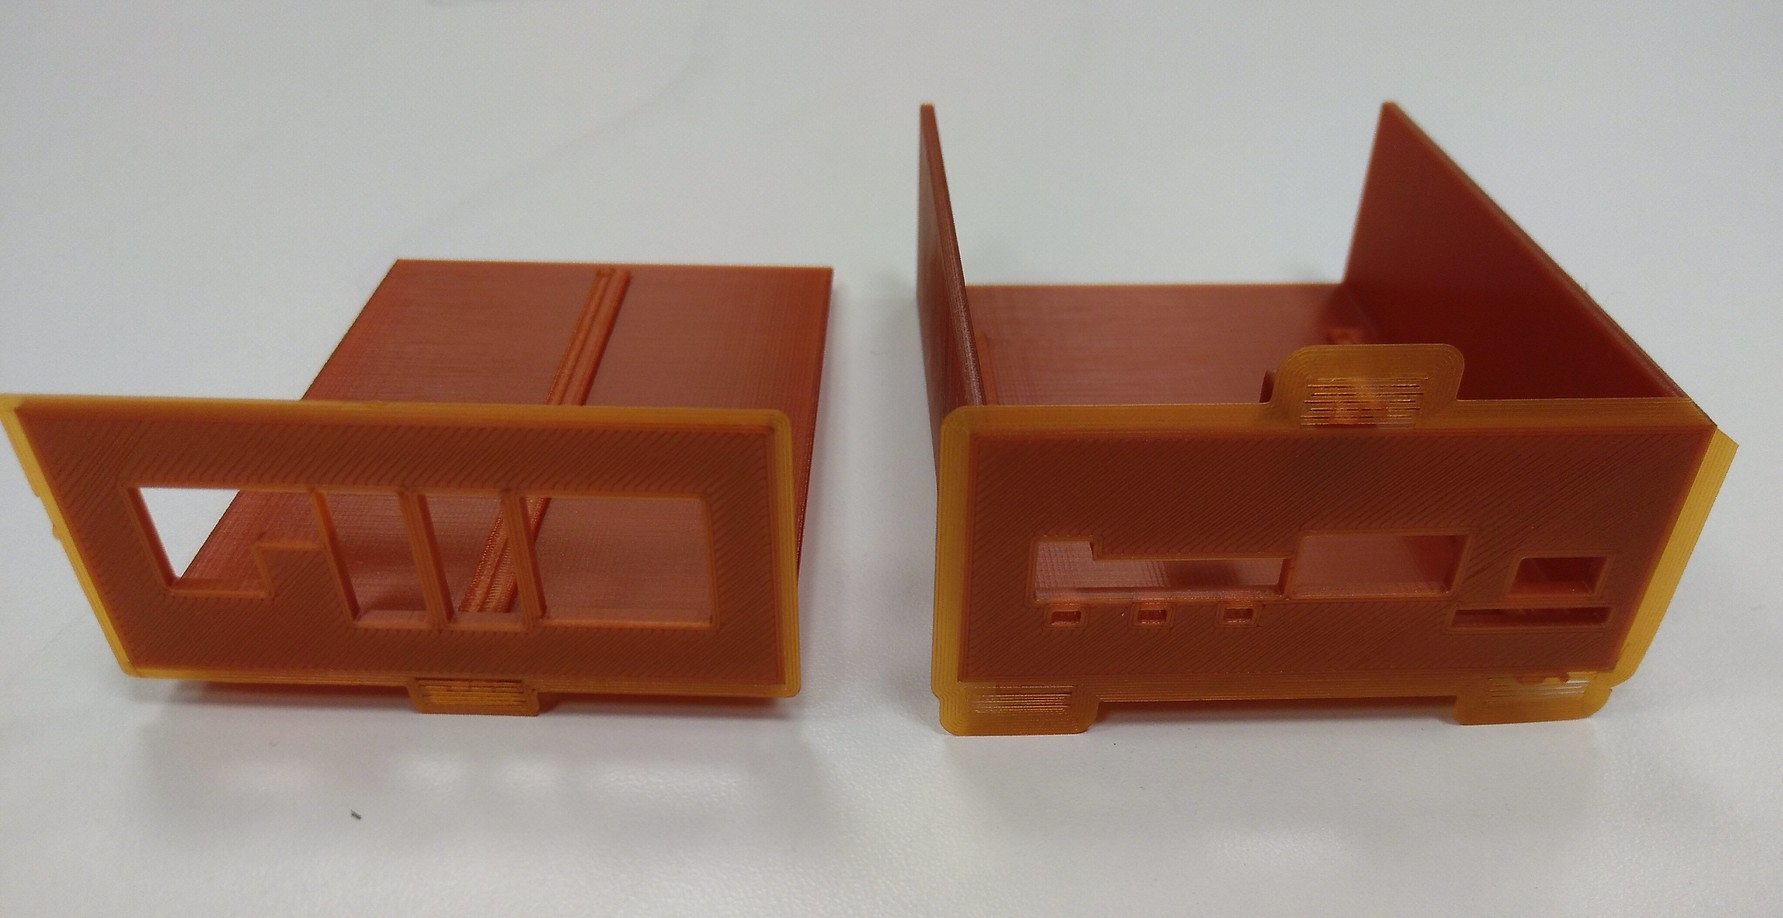 Costumed made 3D printed enclosure for Olimex Lime2